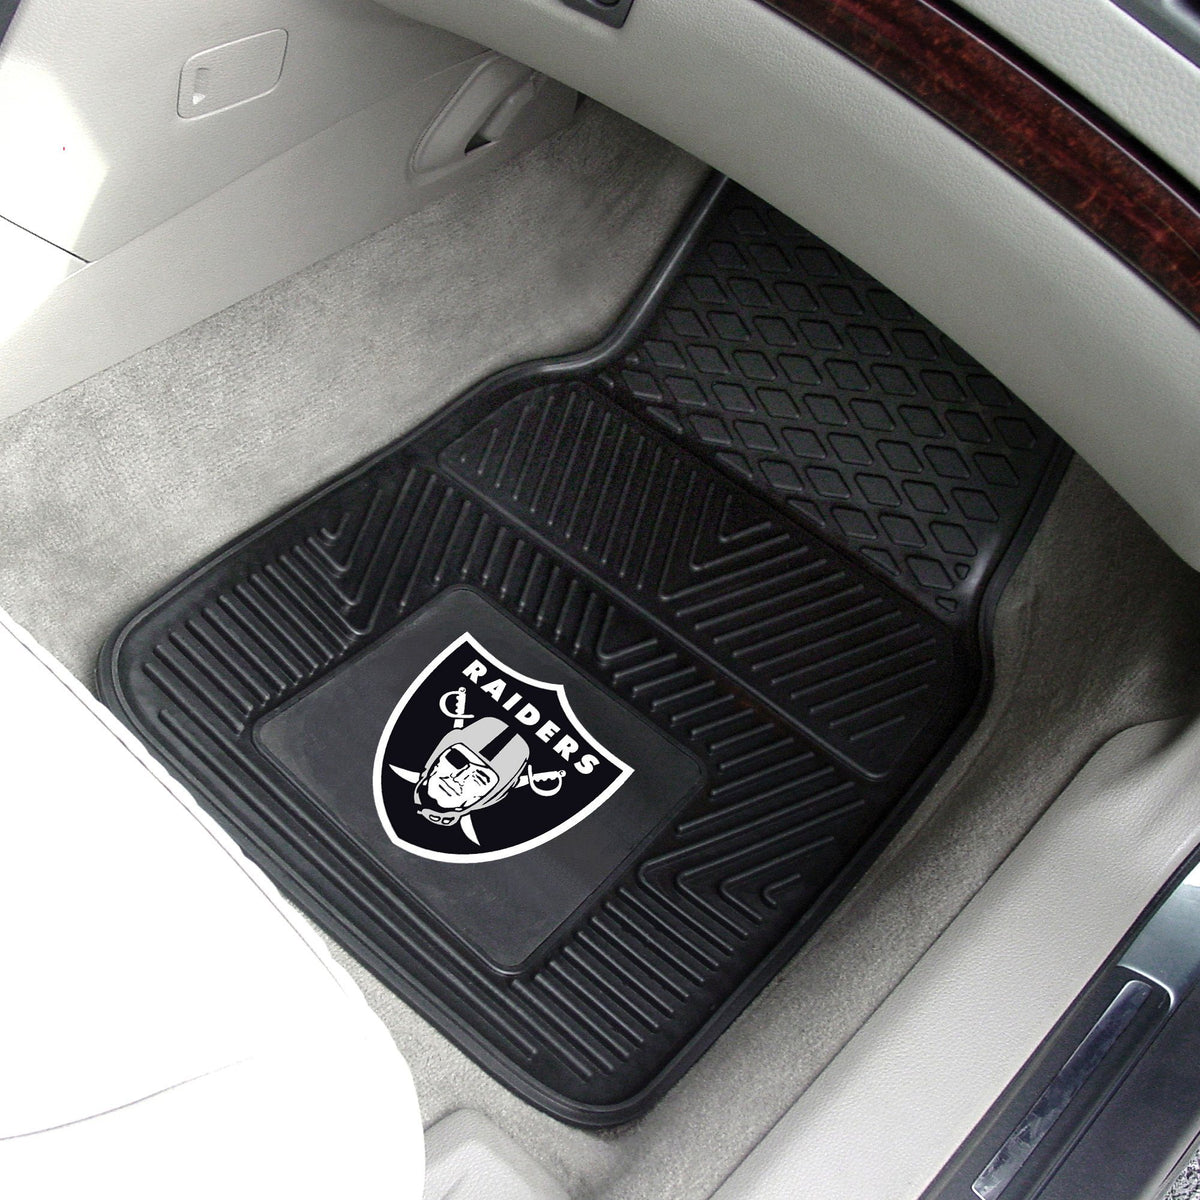 NFL - 2-pc Vinyl Car Mat Set NFL Mats, Front Car Mats, 2-pc Vinyl Car Mat Set, NFL, Auto Fan Mats Las Vegas Raiders